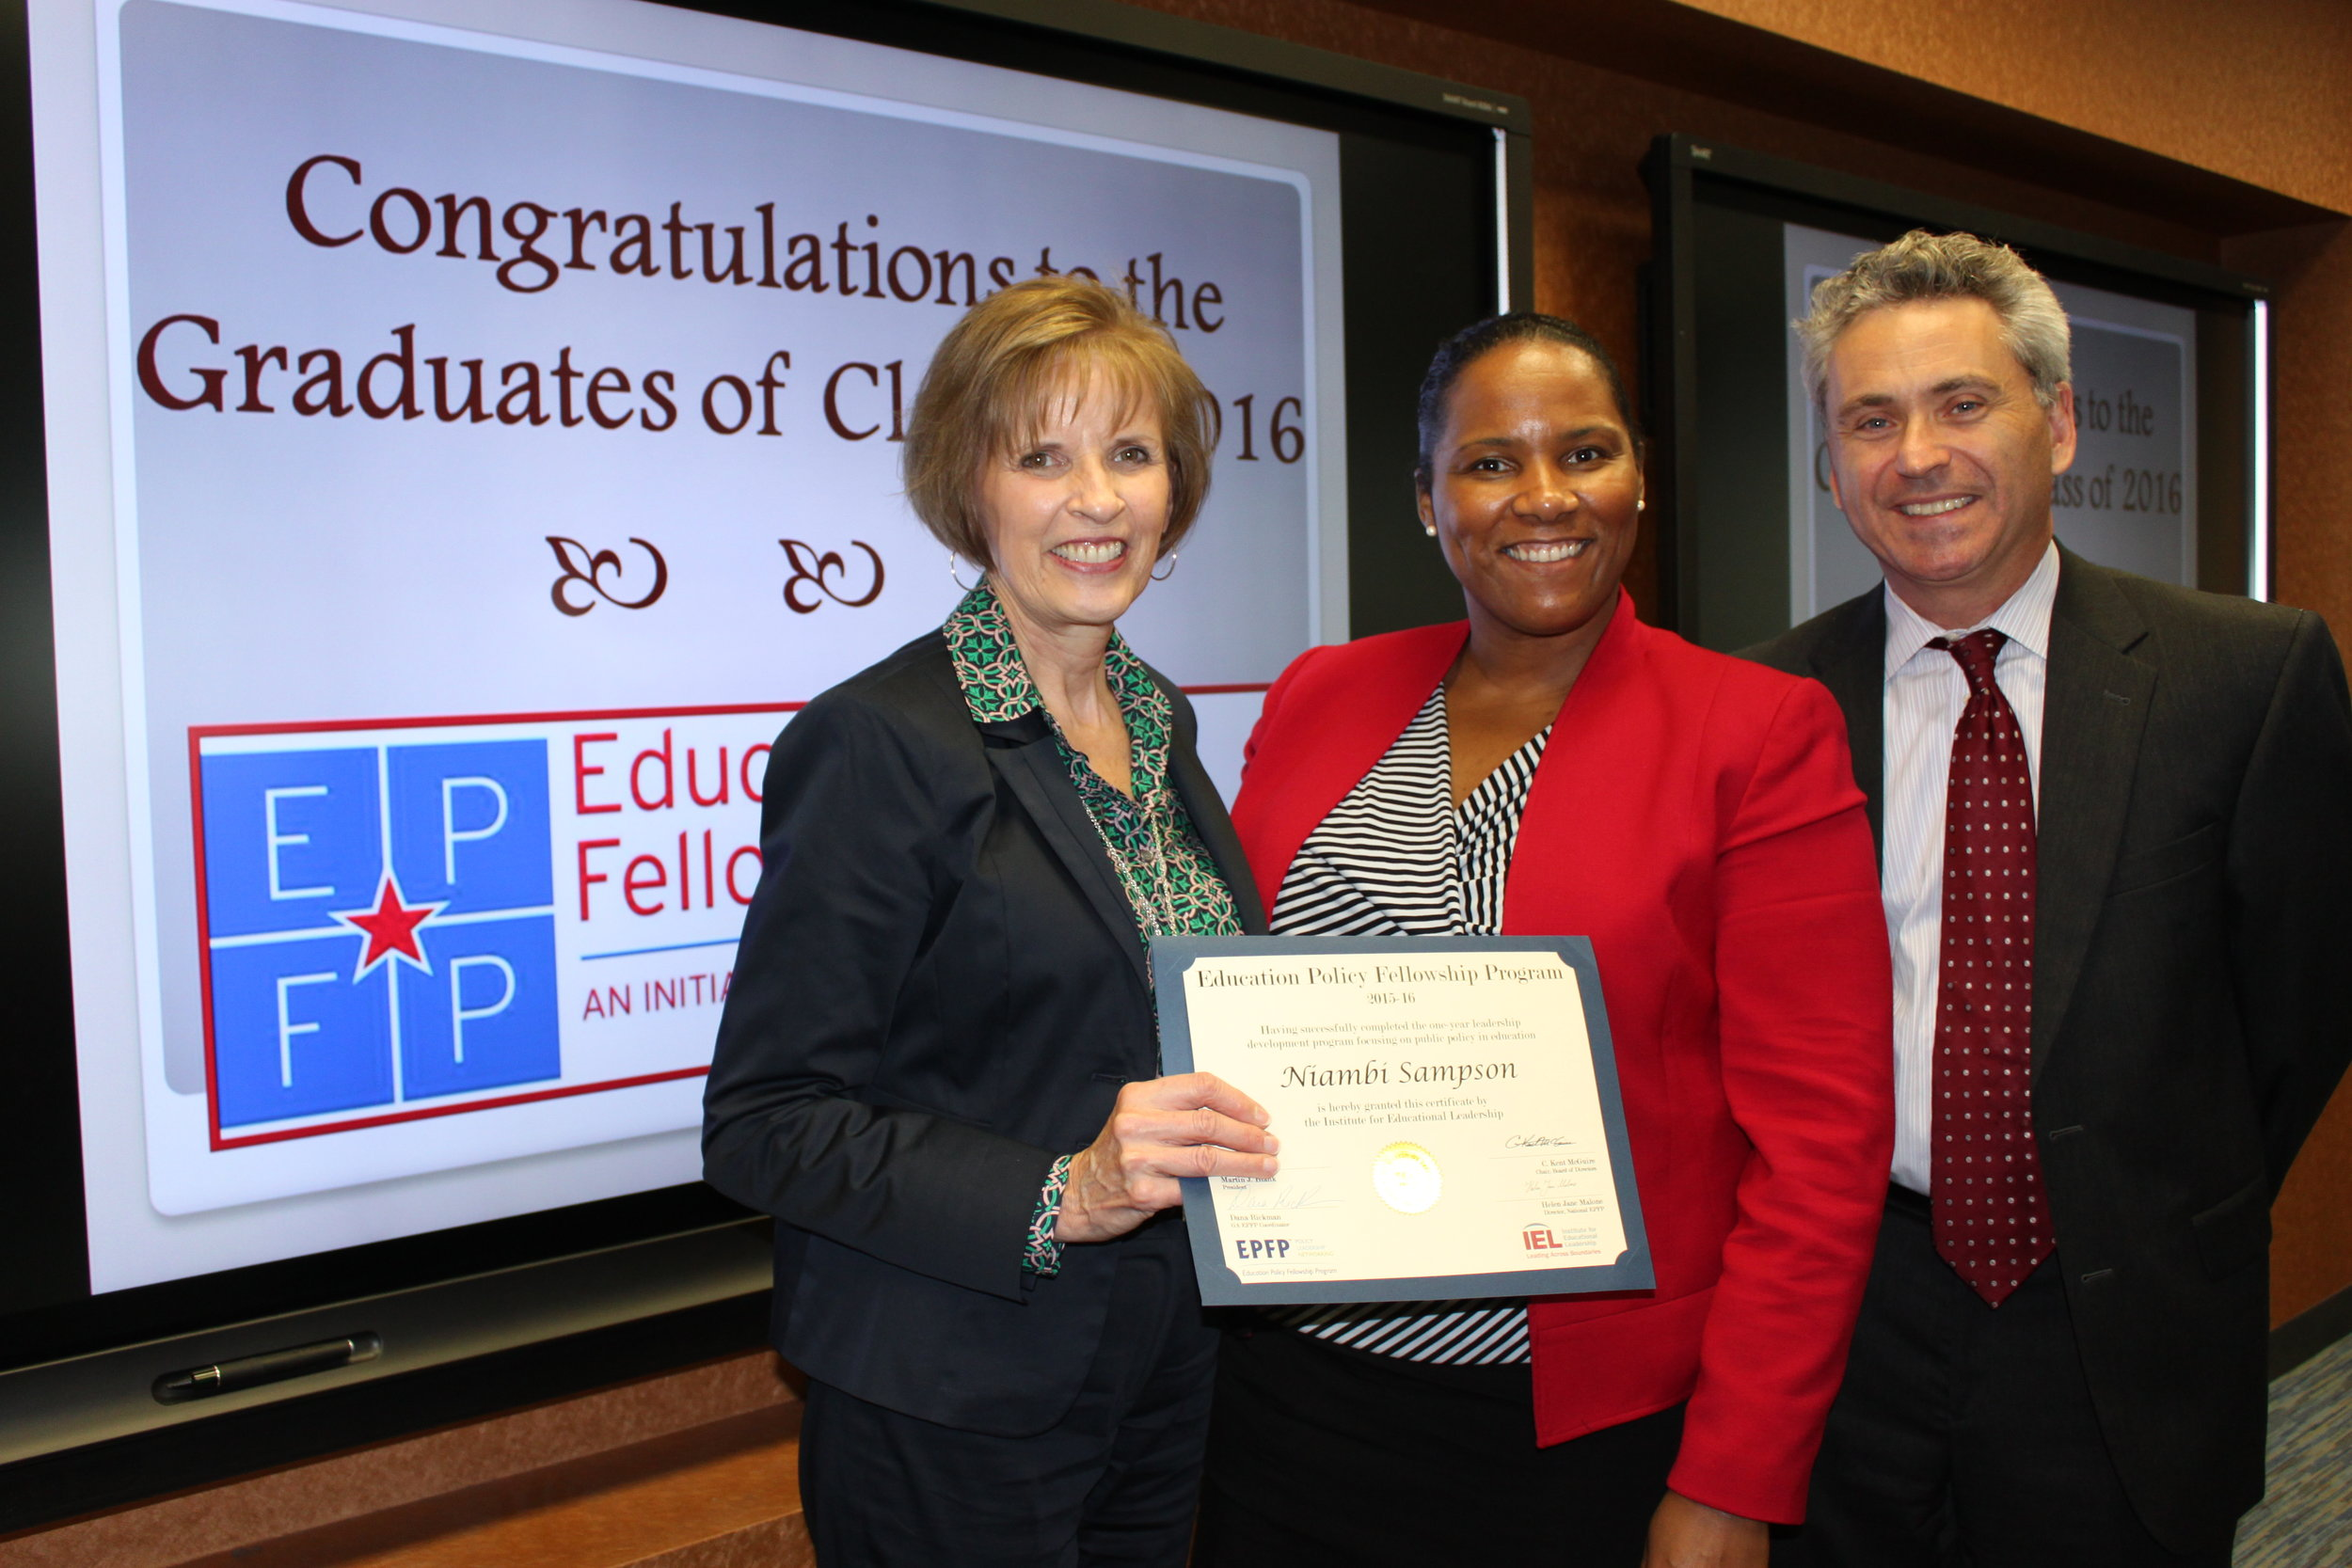 Sampson receiving her certification of participation in the EPFP